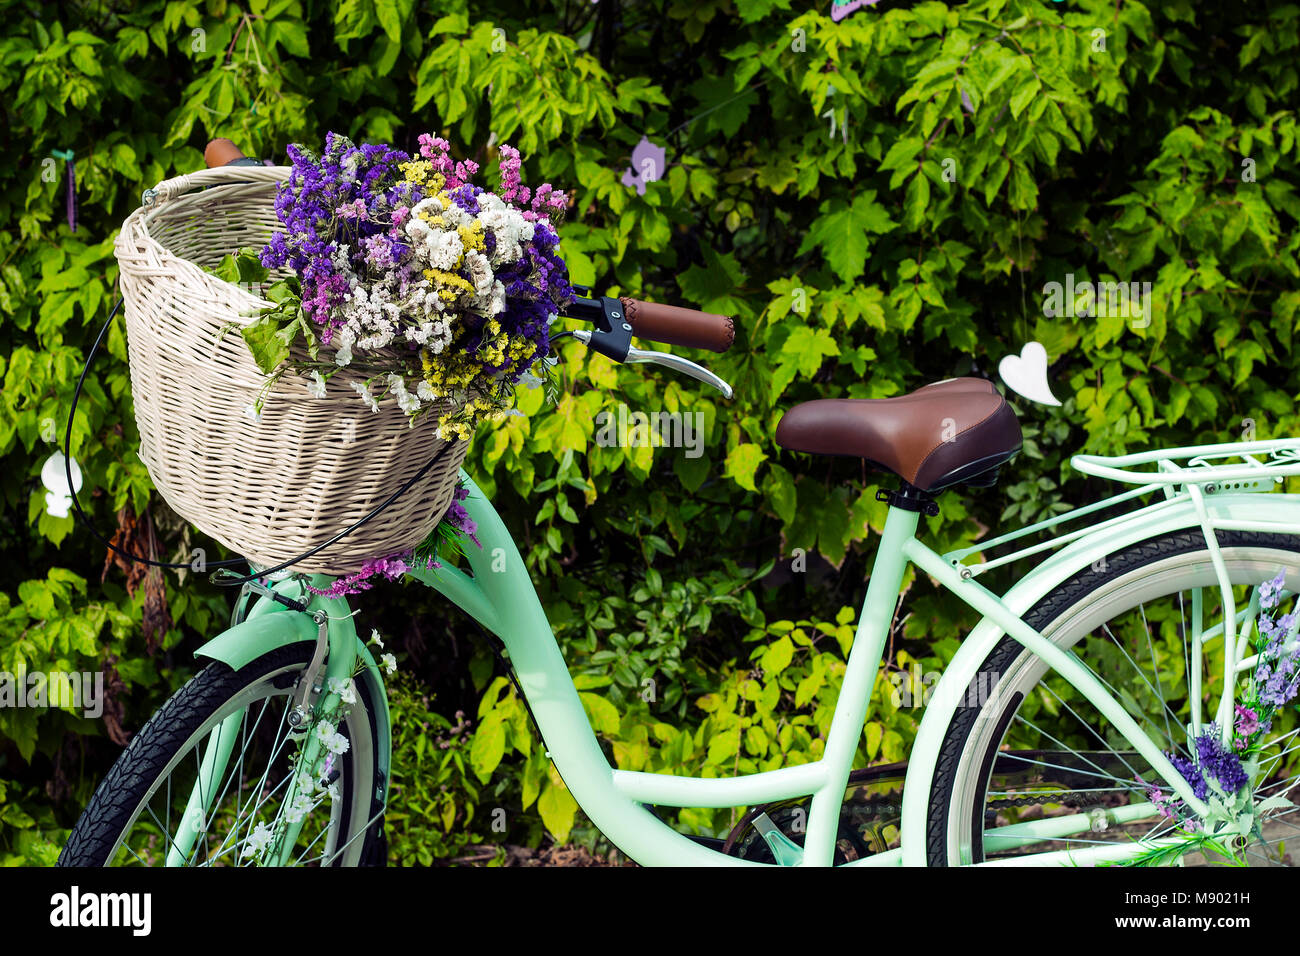 Bicycle with wicker basket of colorful dry flowers Limonium (Statice, sea-lavender, caspia or marsh-rosemary) - Stock Image